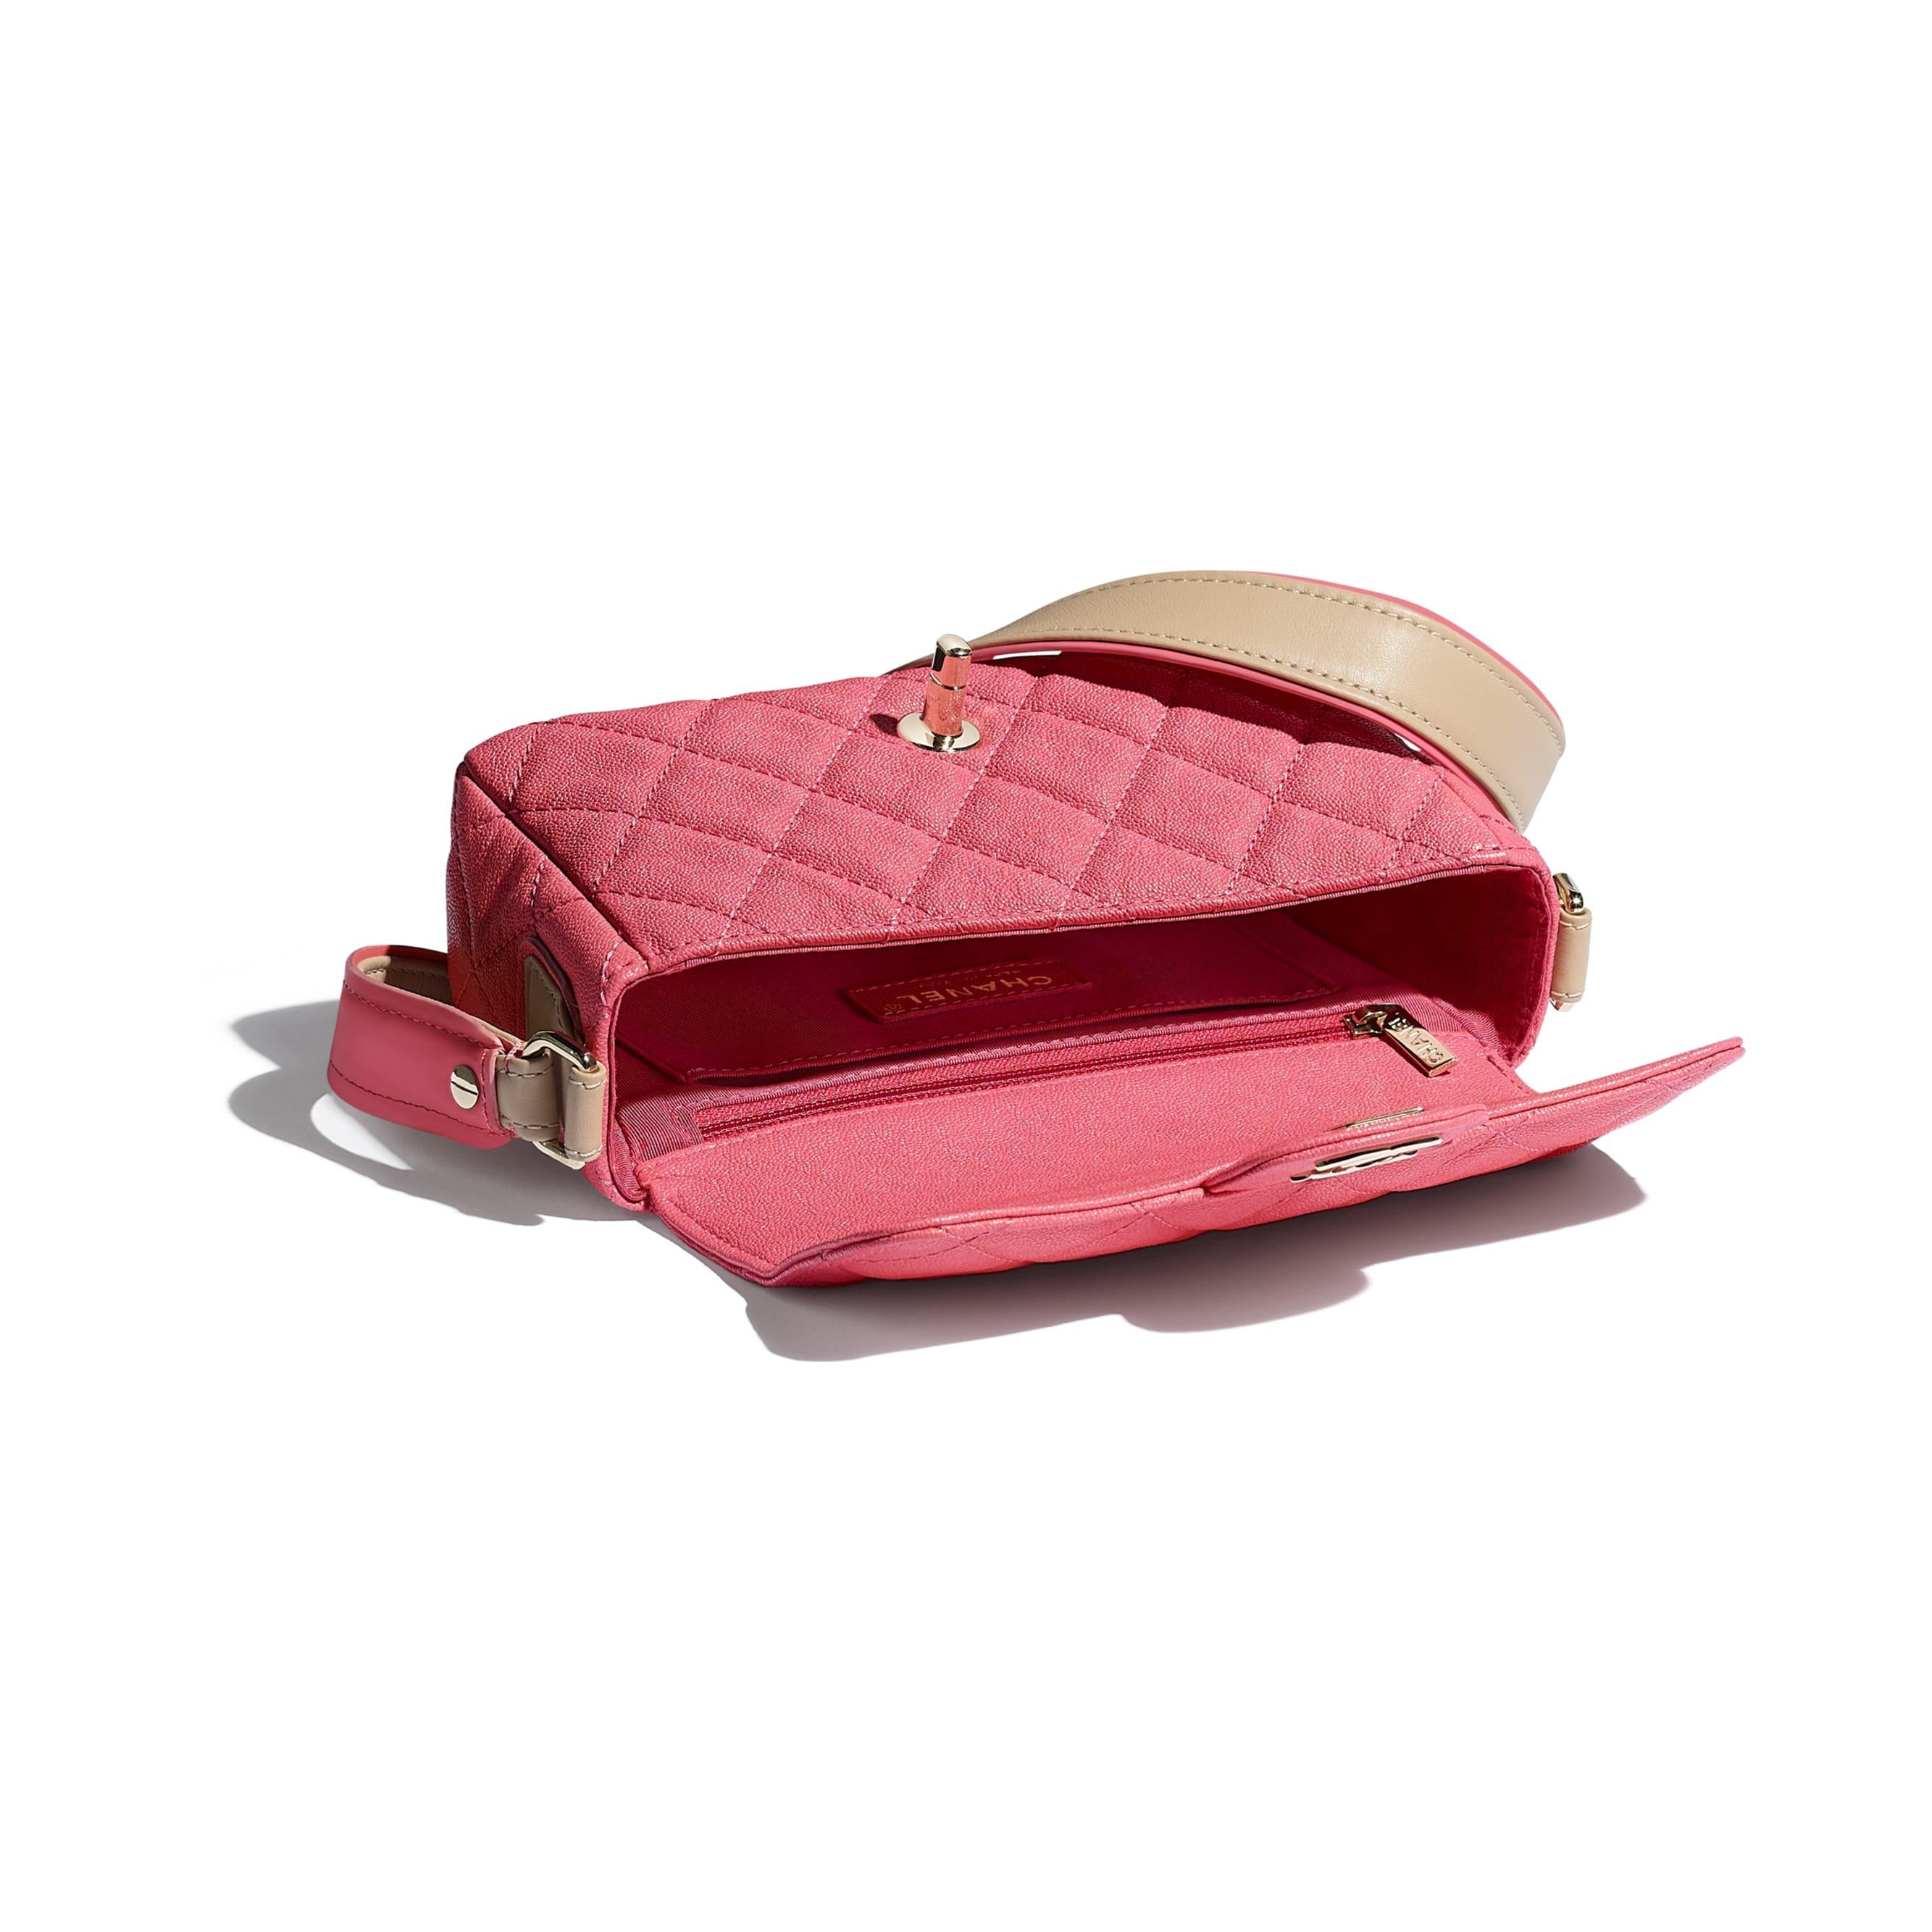 Flap Bag - Coral - Grained Calfskin, Smooth Calfskin & Gold-Tone Metal - CHANEL - Other view - see standard sized version